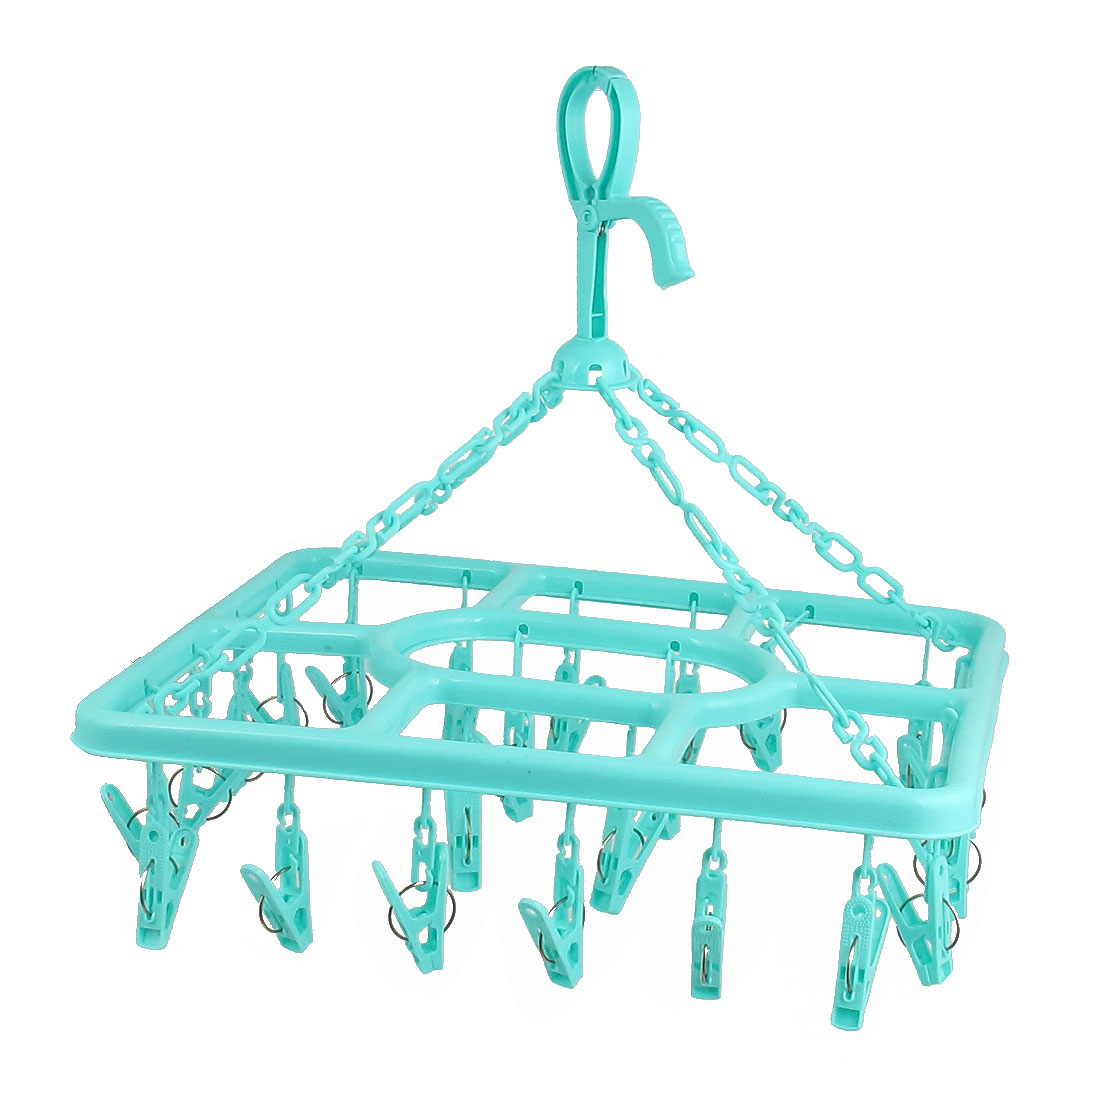 Green Plastic Rectangle Shaped Frame 24 Pegs Clothes Socks Drying Rack Clips Hanger